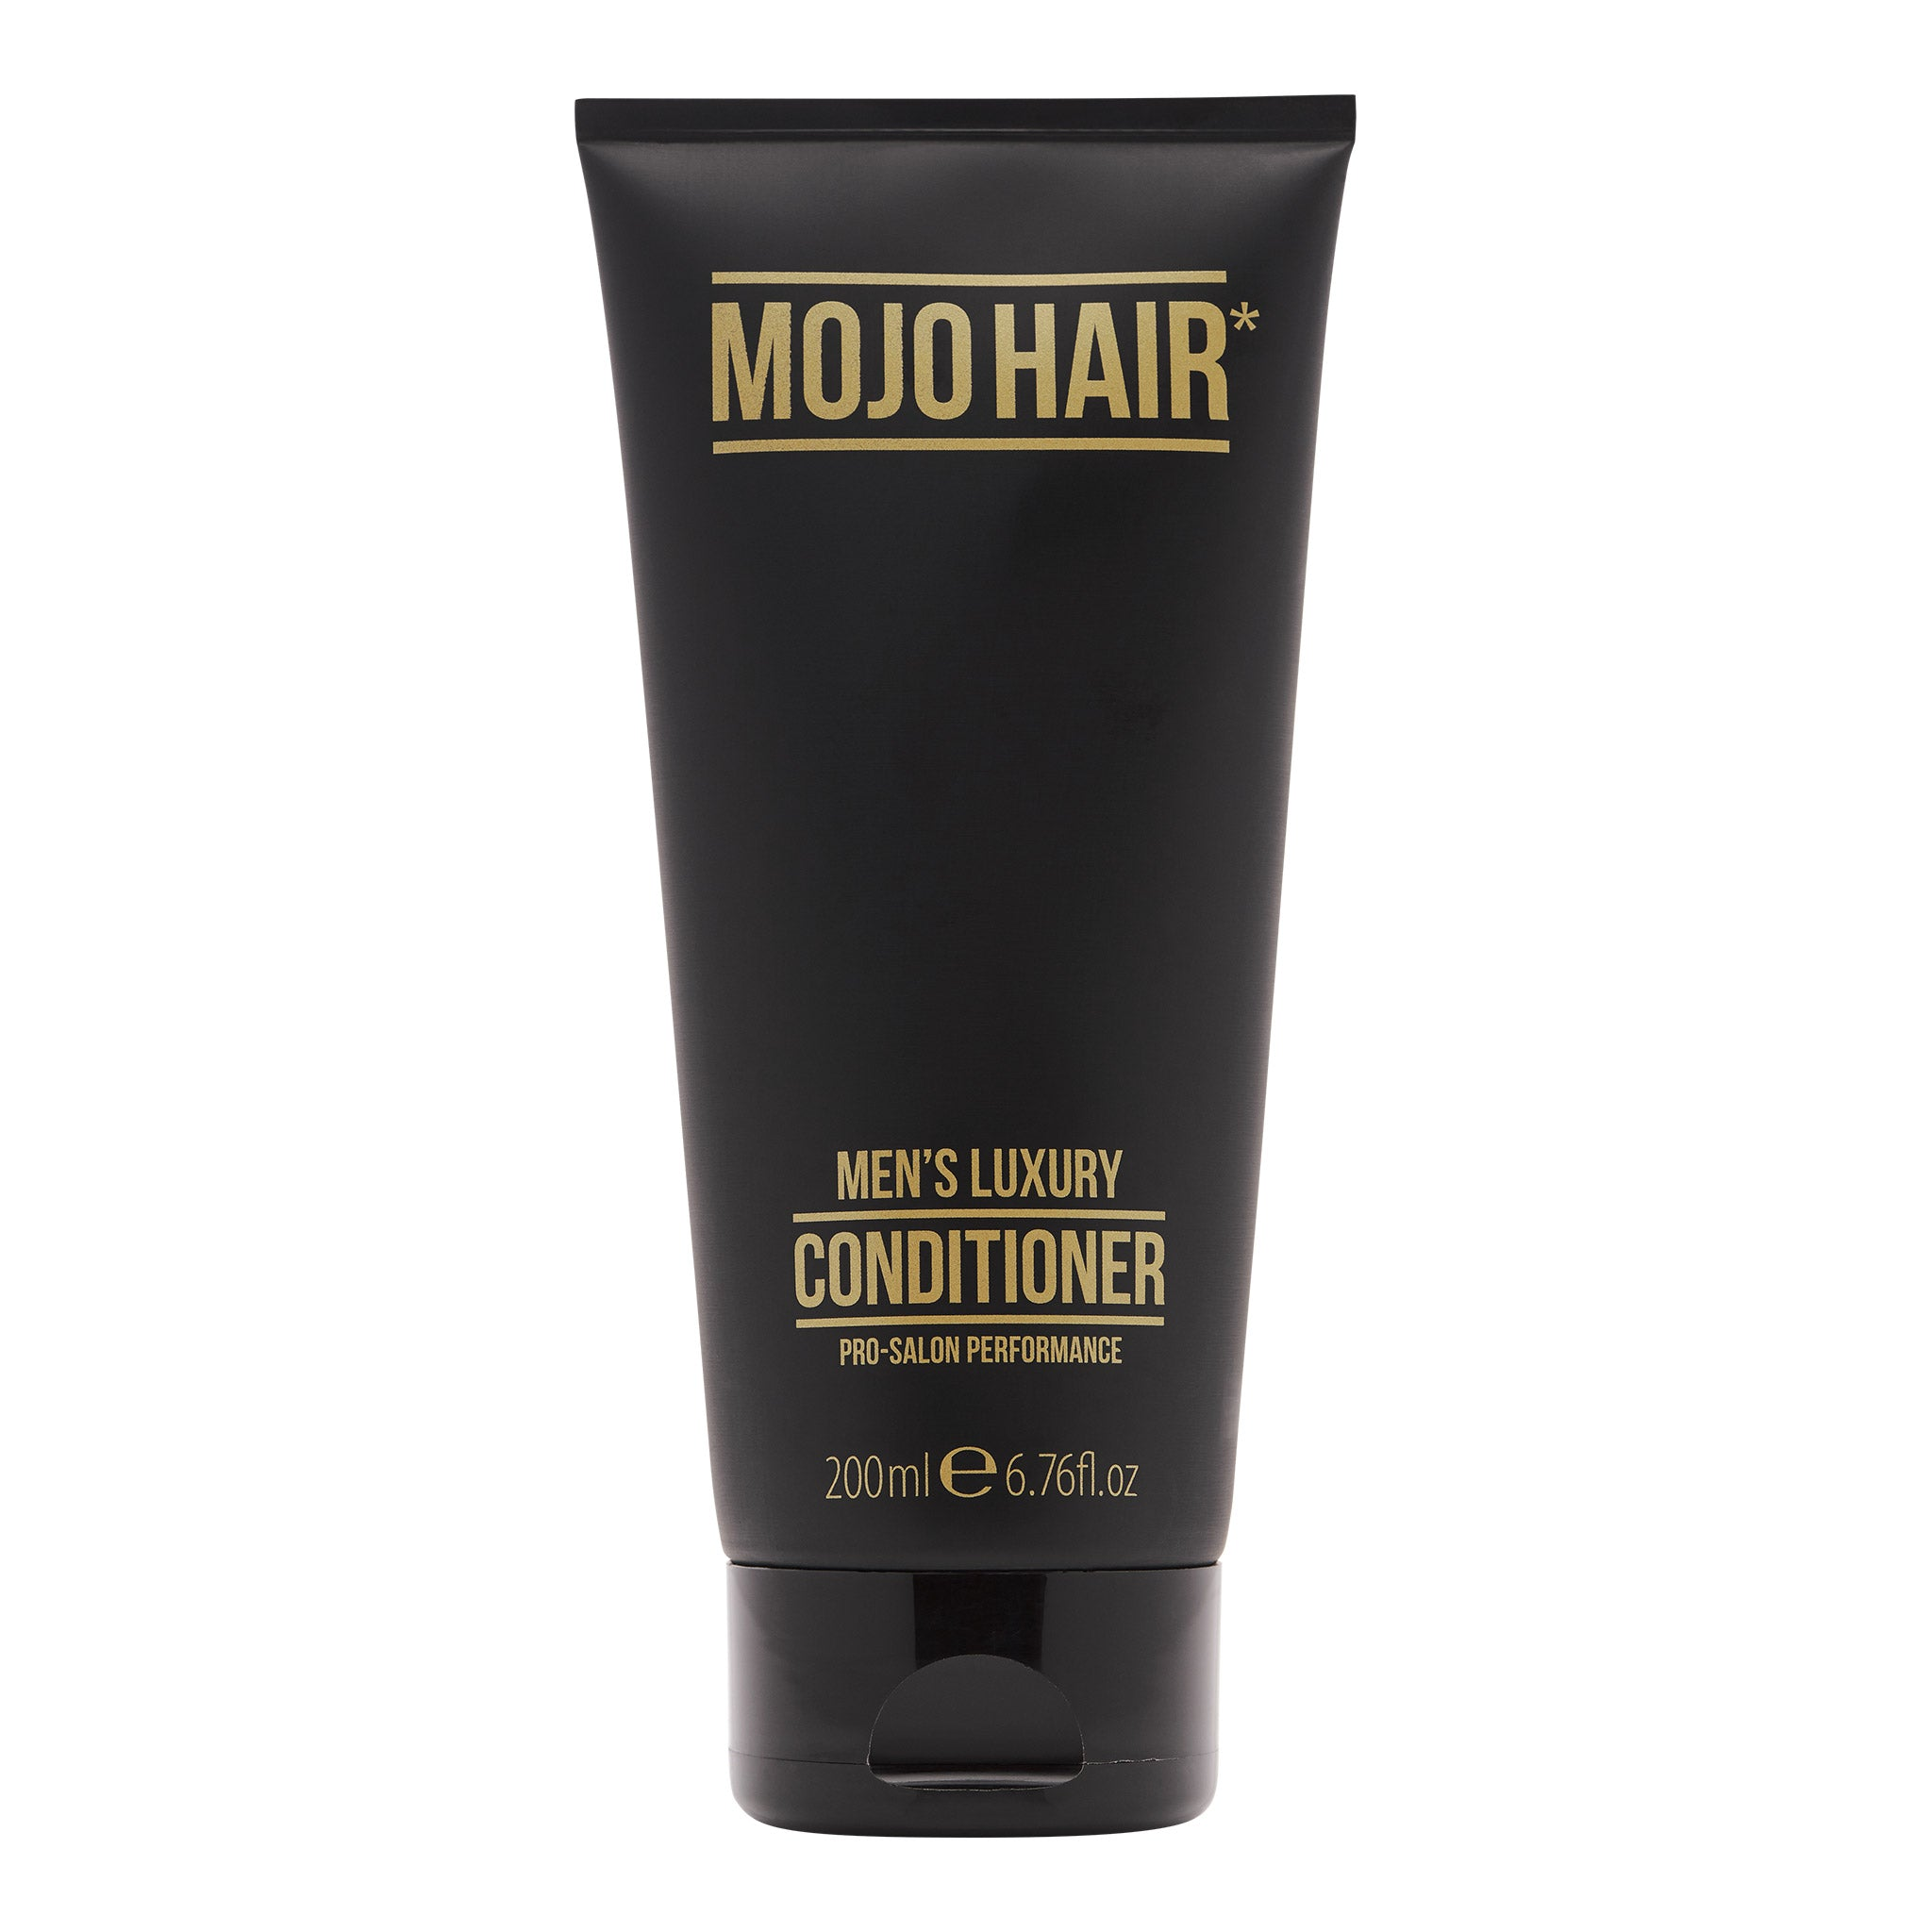 Mojo Hair Men's Luxury Conditioner (200ml / 6.76fl.oz)